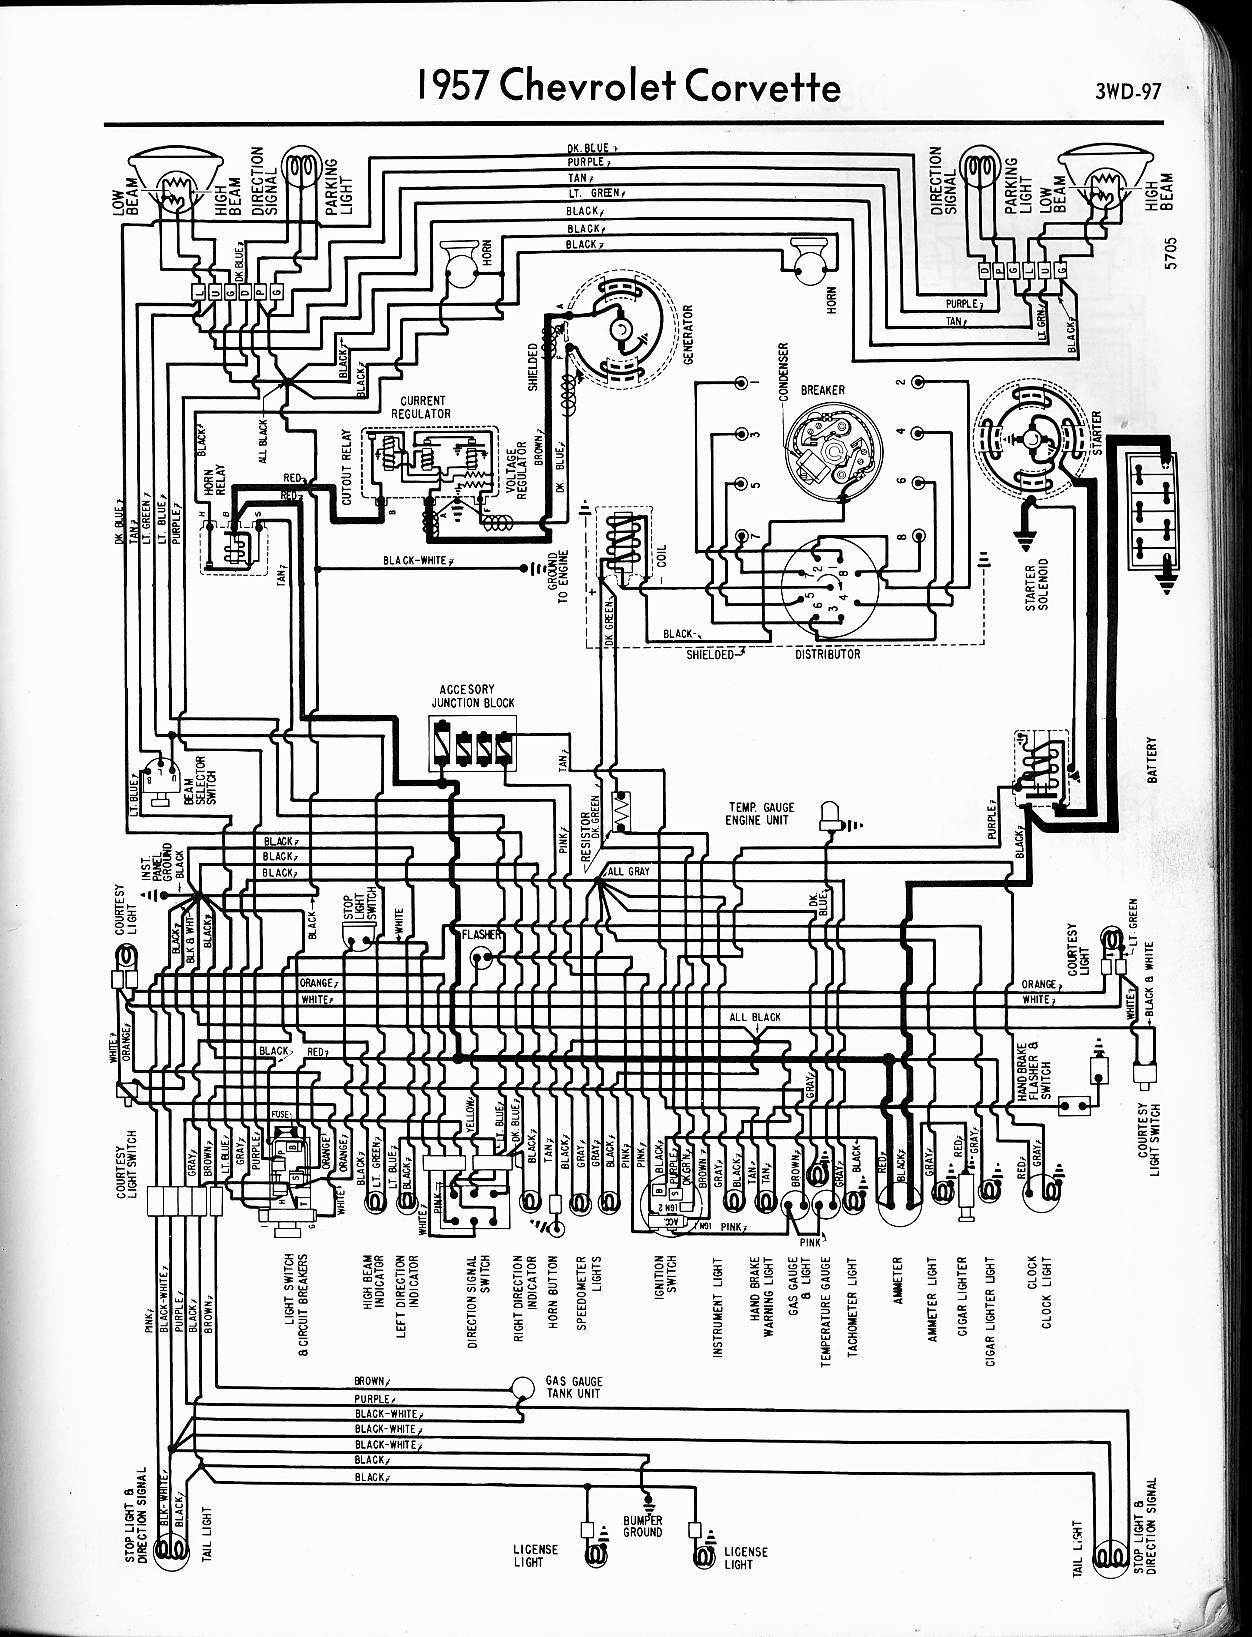 MWireChev57_3WD 097 57 65 chevy wiring diagrams 1957 chevy wiring diagram at mr168.co